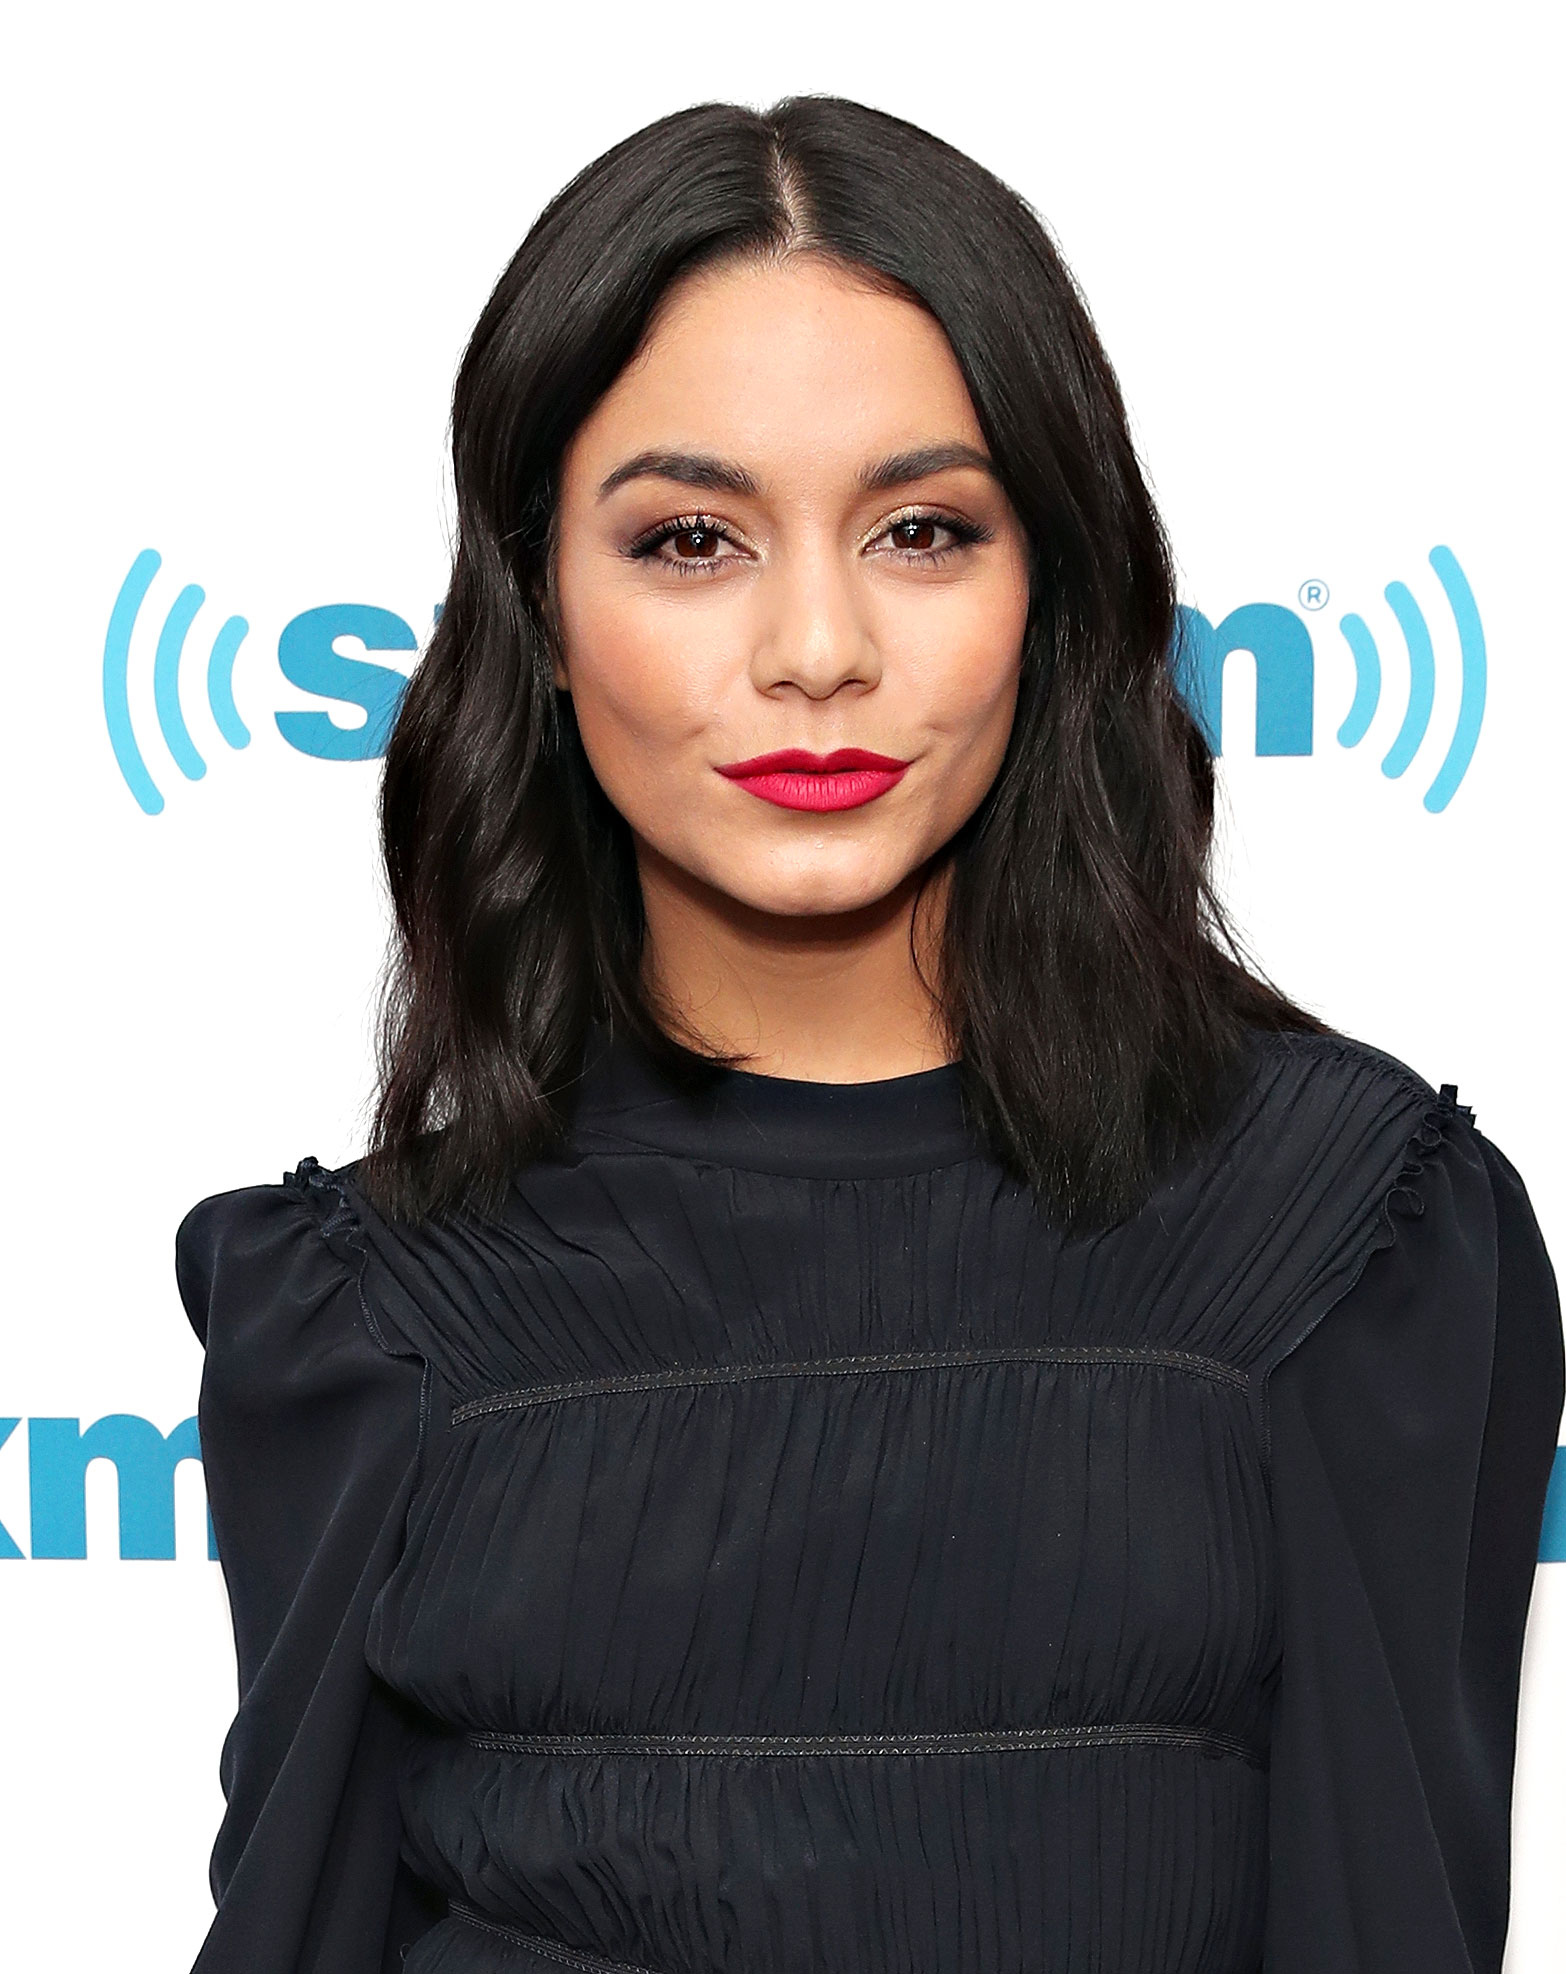 vanessa-hudgens-red-lipstick - The best compliment to beautiful bronzy skin and a strong brown? A bold red lip, of course, as the Second Act actress rocked during a SirusXM interview on Wednesday, December 12.